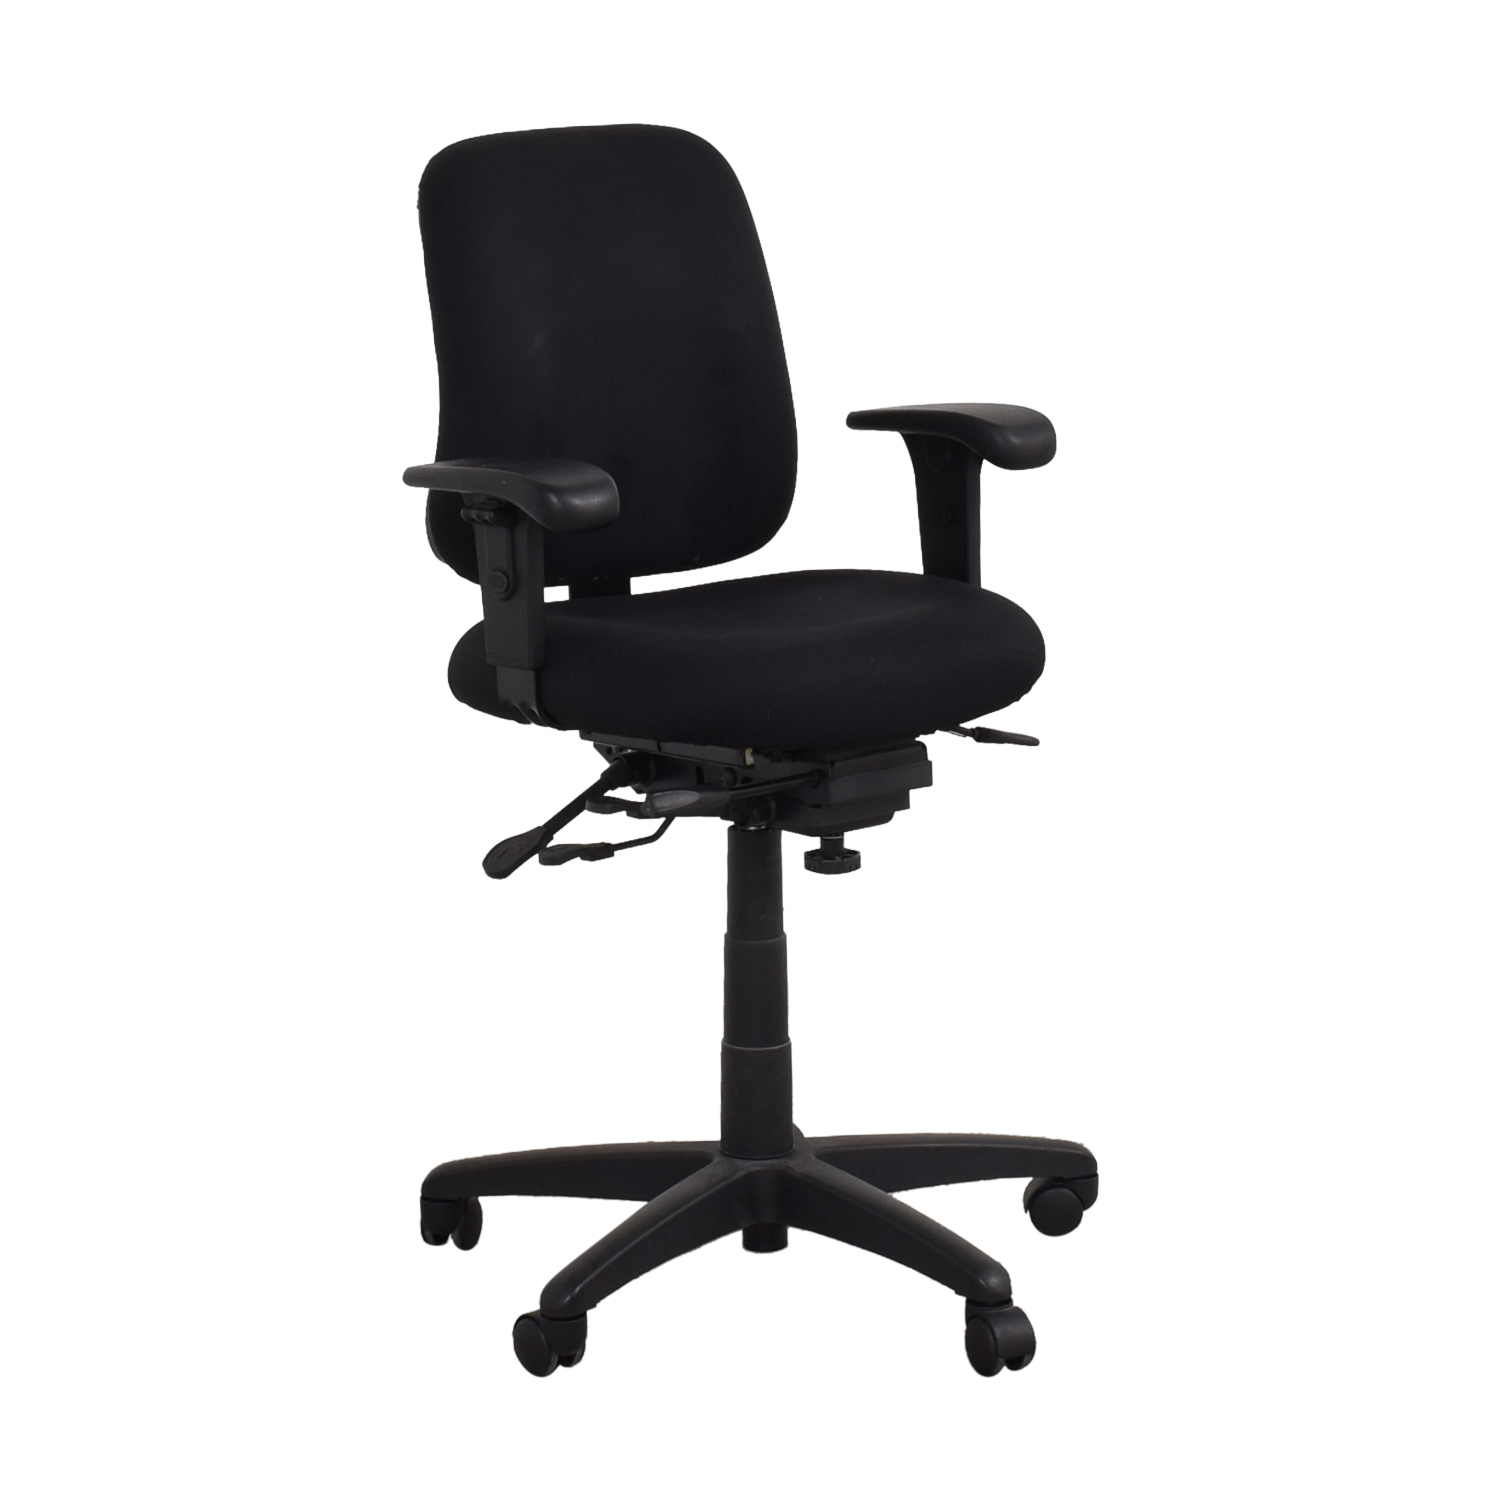 Office Master Office Master PT Value Economy Task Chair with Arms pa